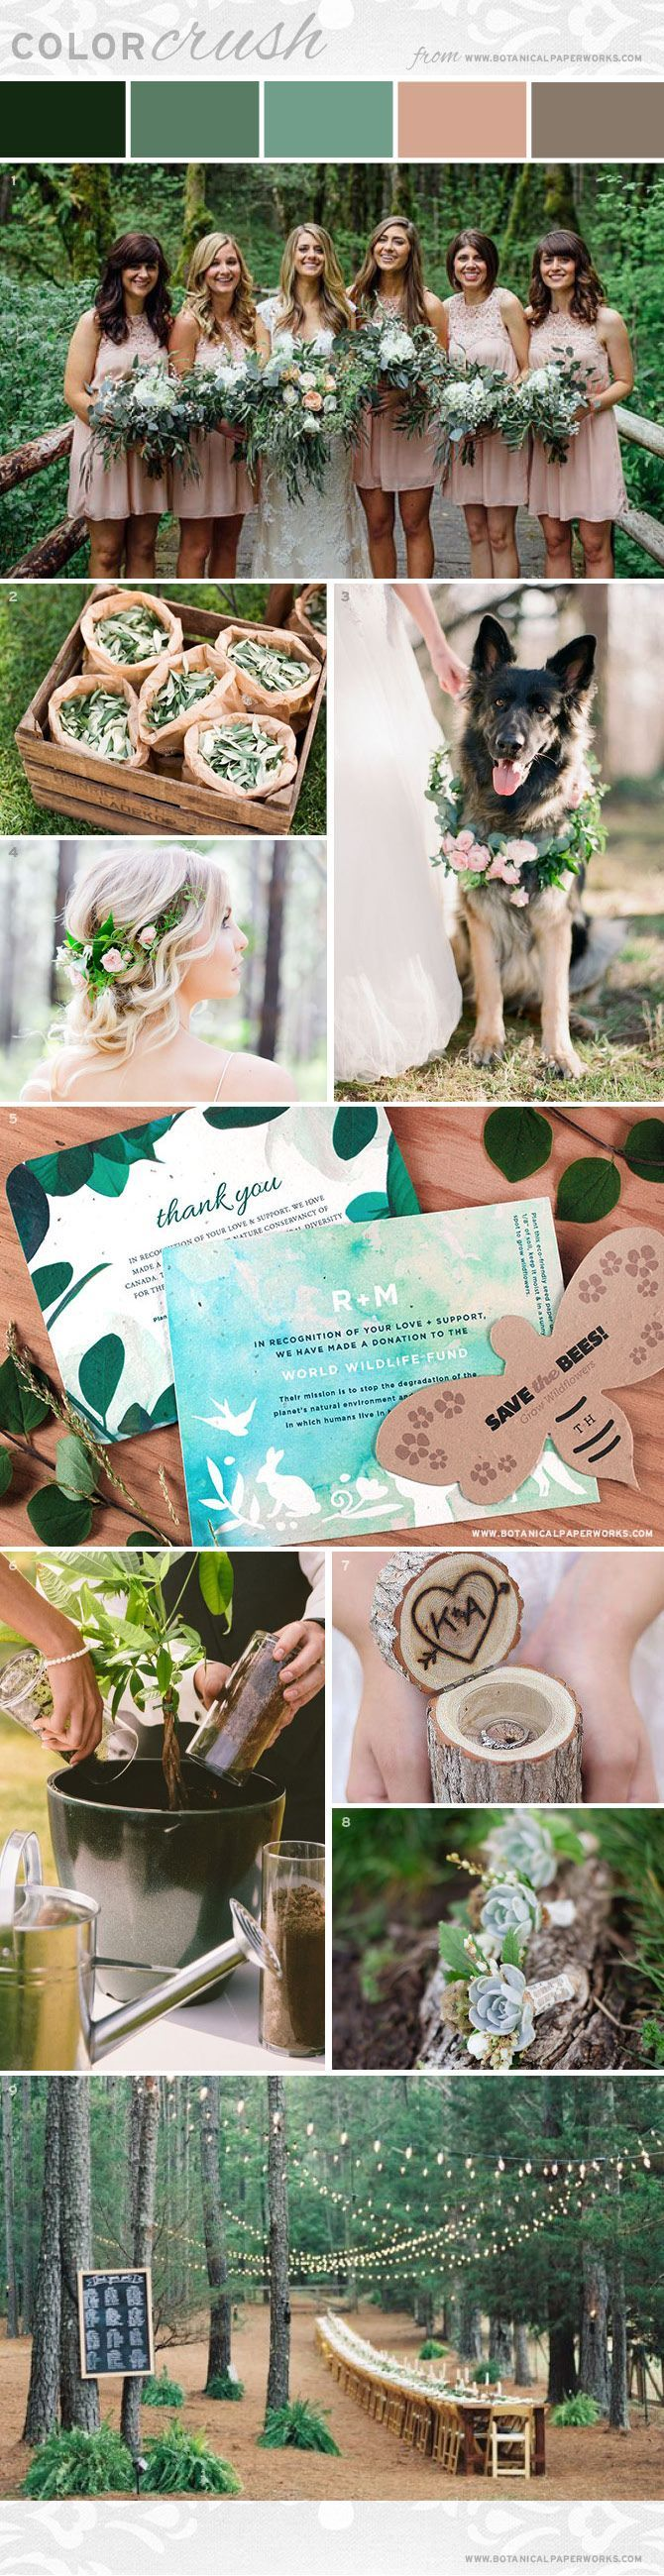 Create natural, beautiful ambiance for an eco-friendly wedding with the earthy elements featured in this dreamy #weddingstyle board. #eco #weddingplanning #ecofriendly